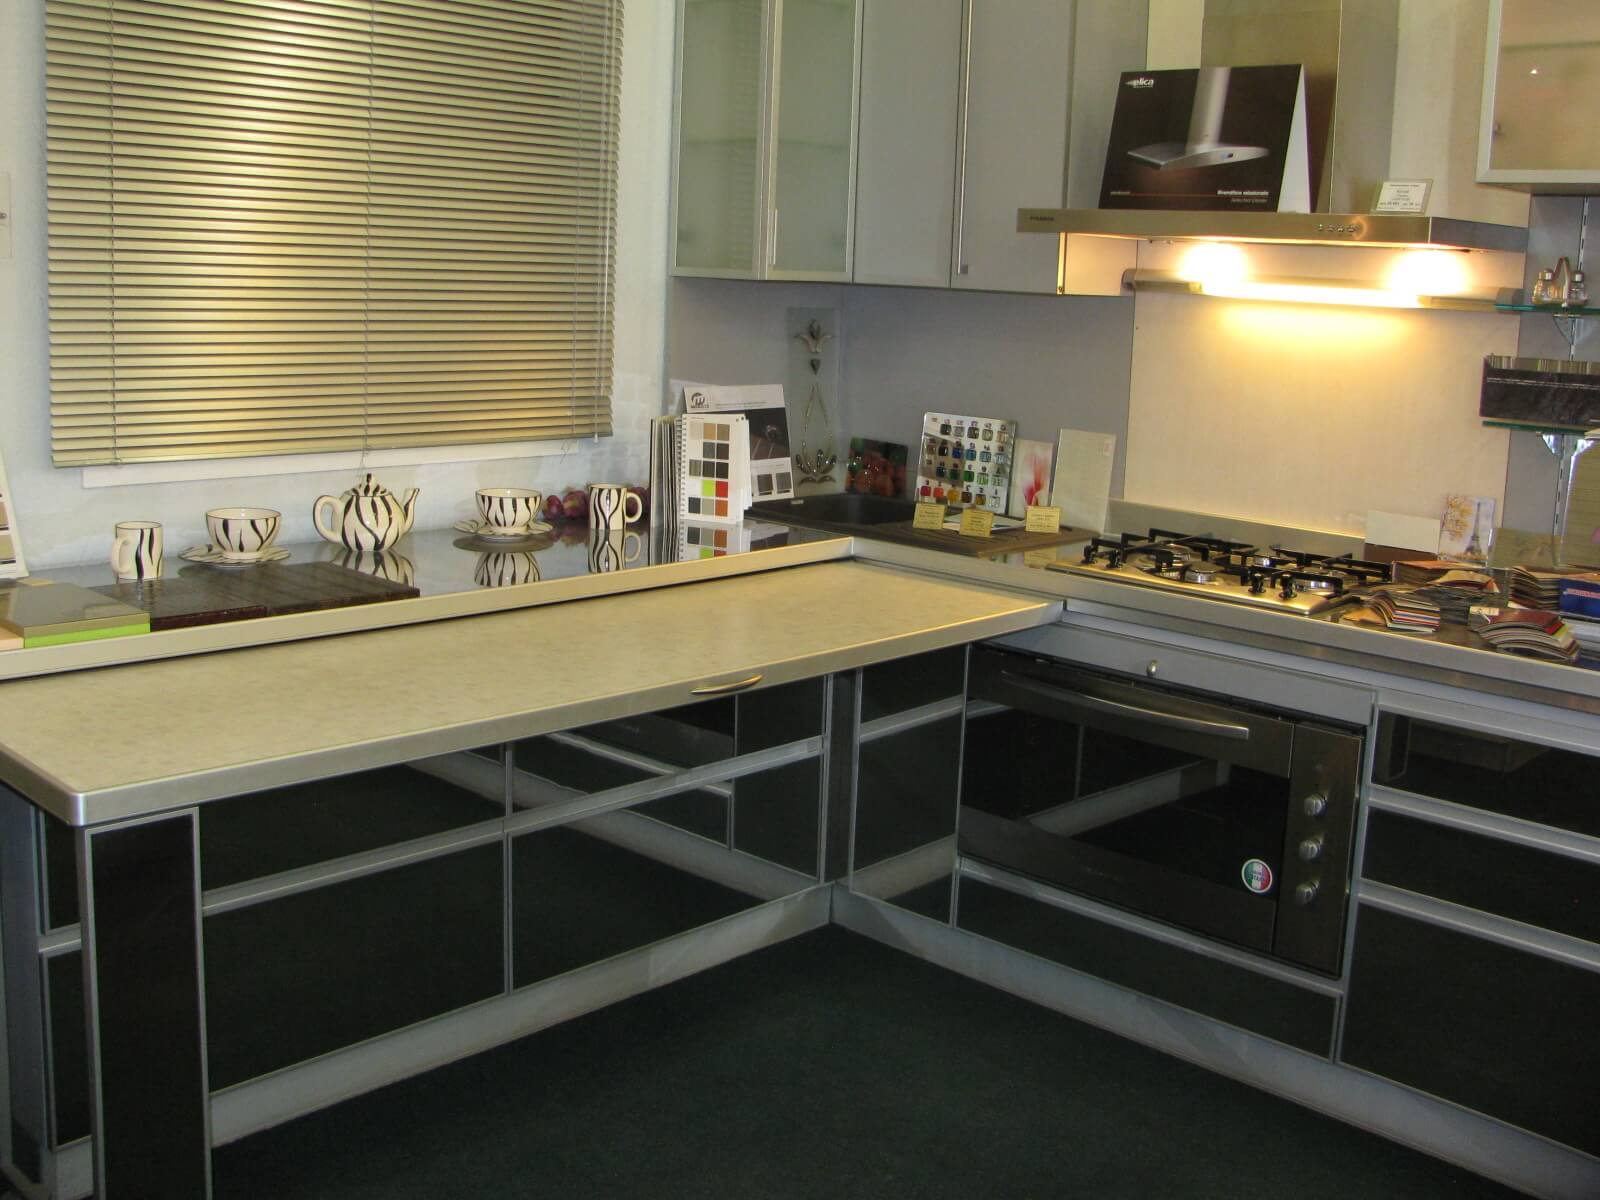 10 Kitchen Custom Custom Cabinets for Unique Functional Interior. Modernplastic facades looks in harmony with light folding table